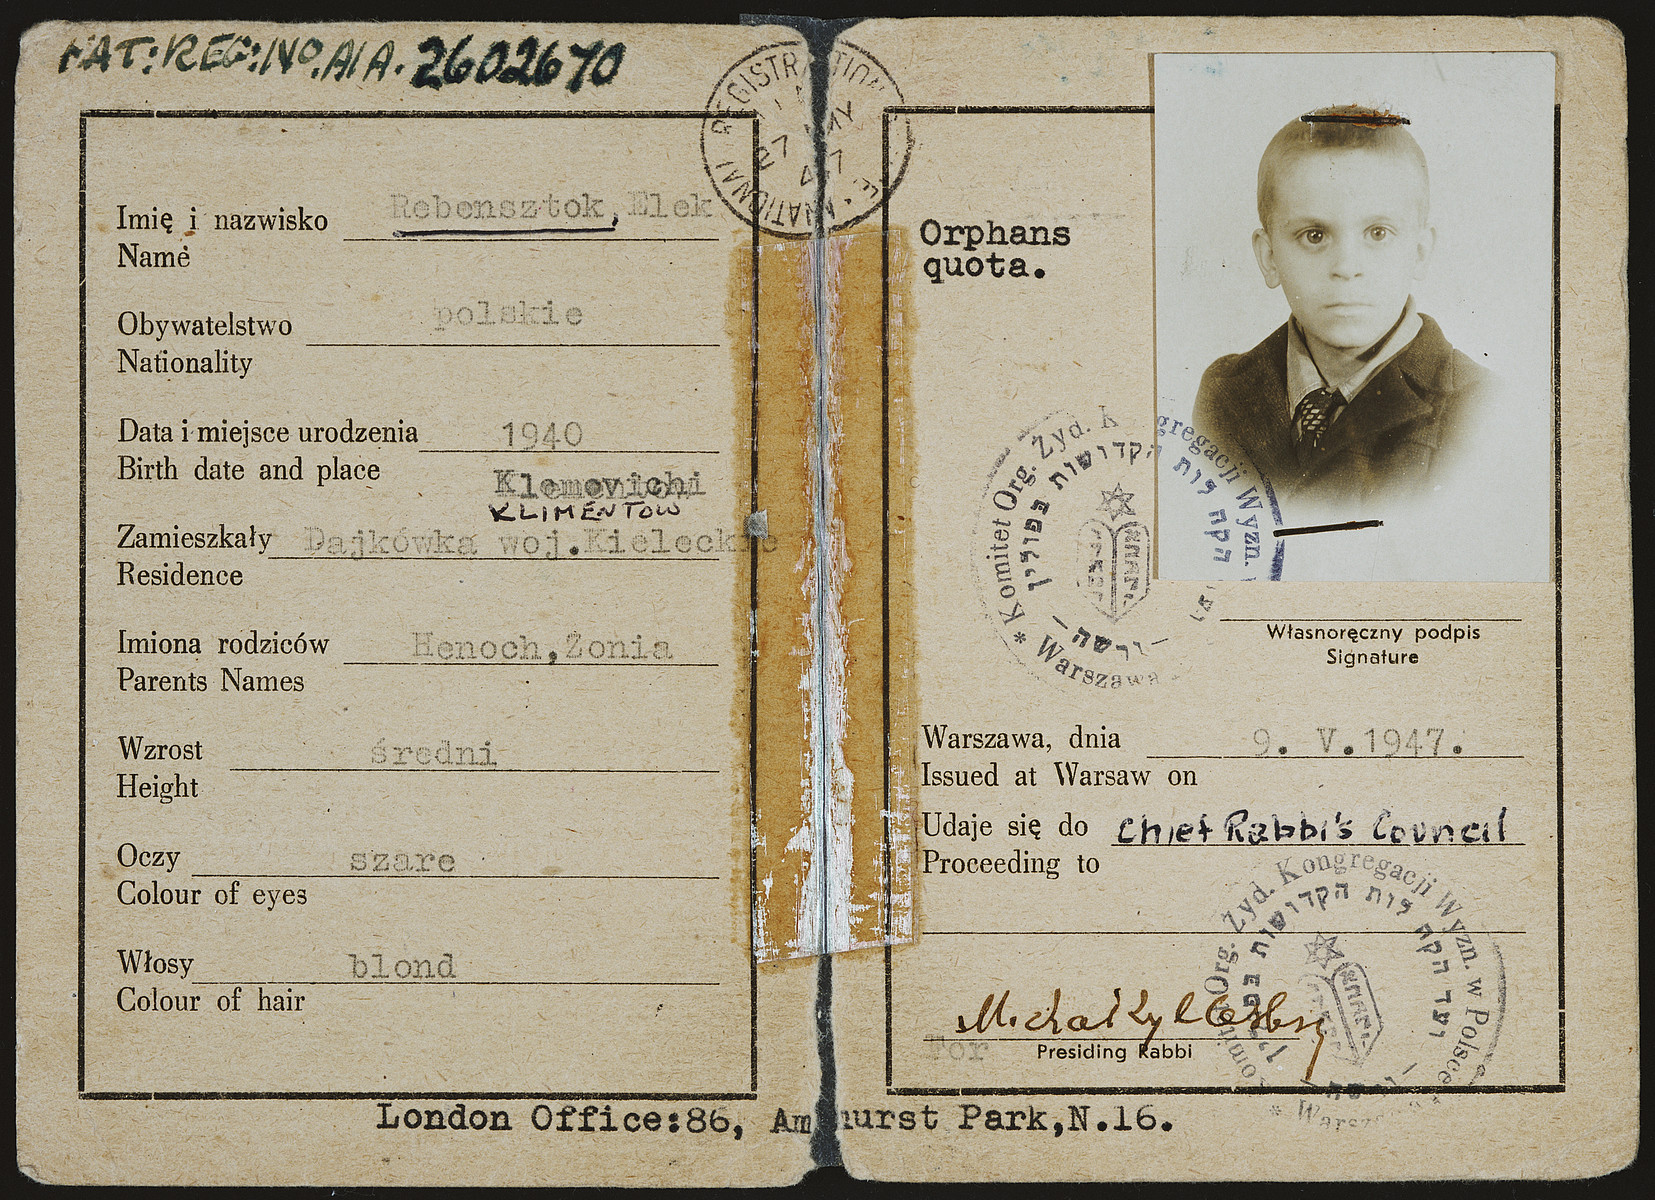 "Identification card issued to Elek Rebensztok by the Central Council of Jewish Congregations of Poland and stamped by British immigration authorities allowing him to provisionally enter the country under the orphans' quota.  The conditions listed on the back side read, ""The holder is permitted to land at Leith subject to the following condition namely that he/she registers at once with the police on attaining the age of sixteen years, that he/she does not enter any employment without consent of the Ministry of Labour and National Services and that he/she emigrate from the United Kingdom at the earliest opportunity."